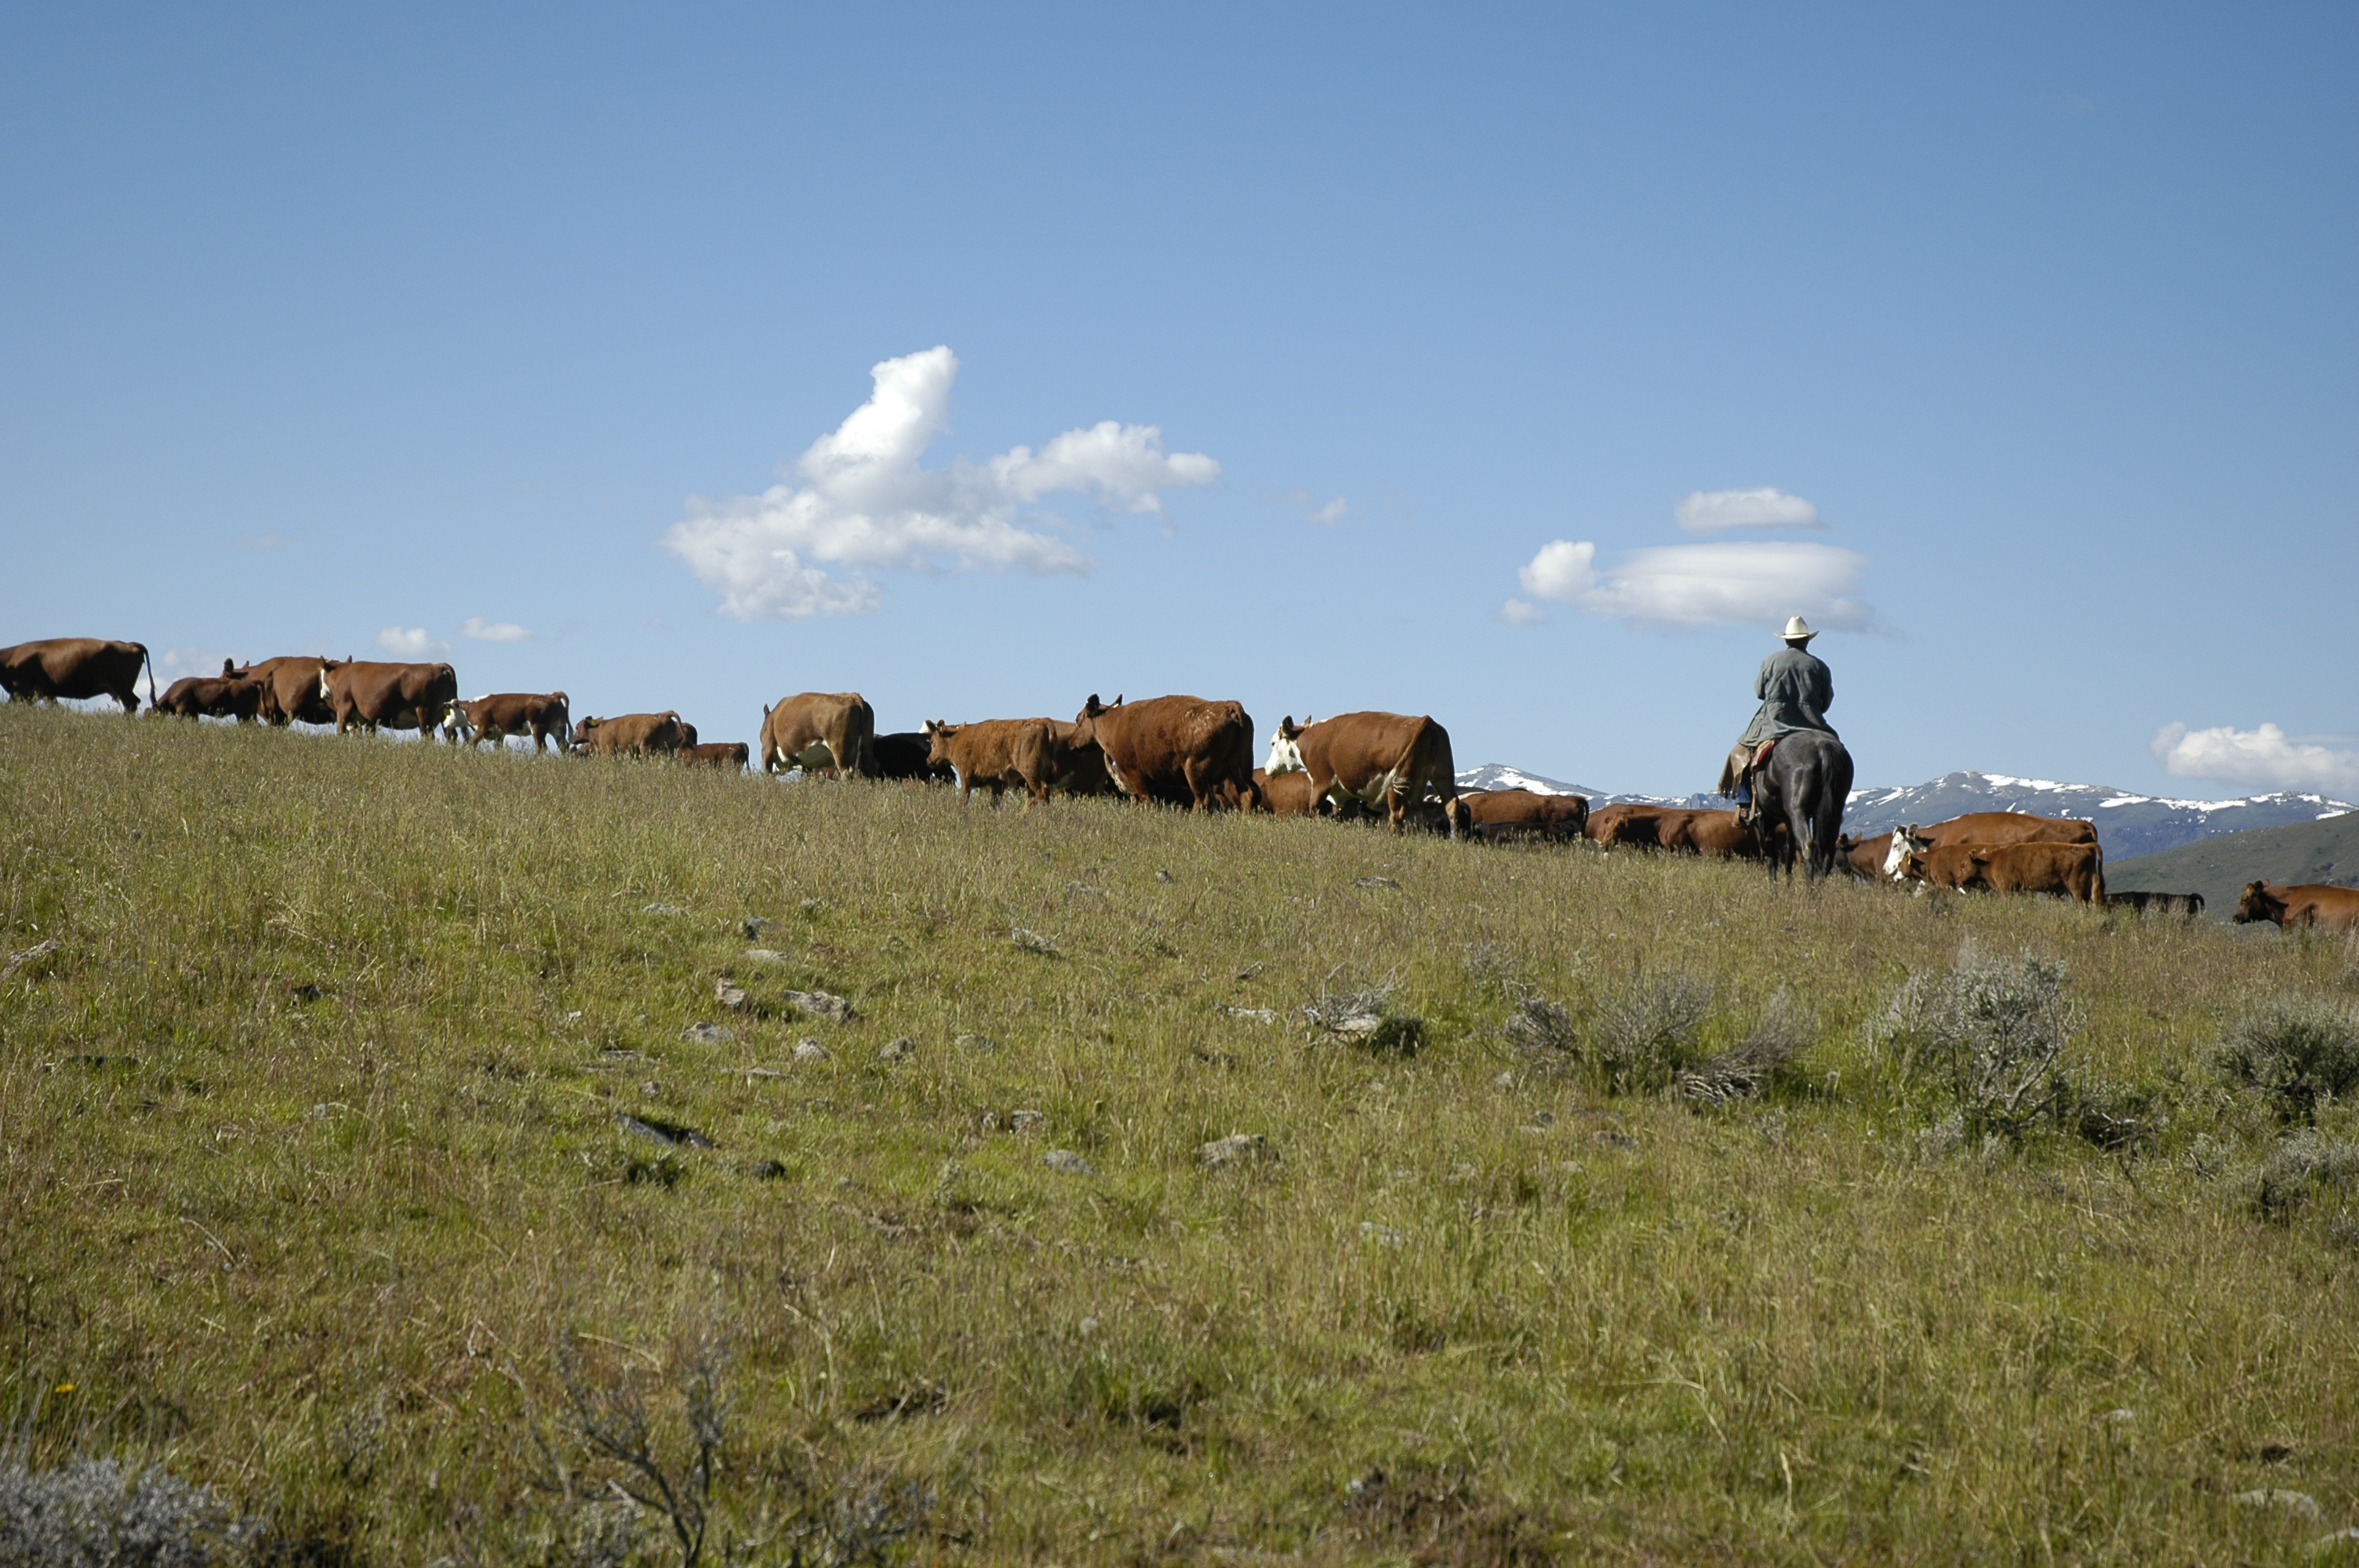 Herding cattle on mountain top.